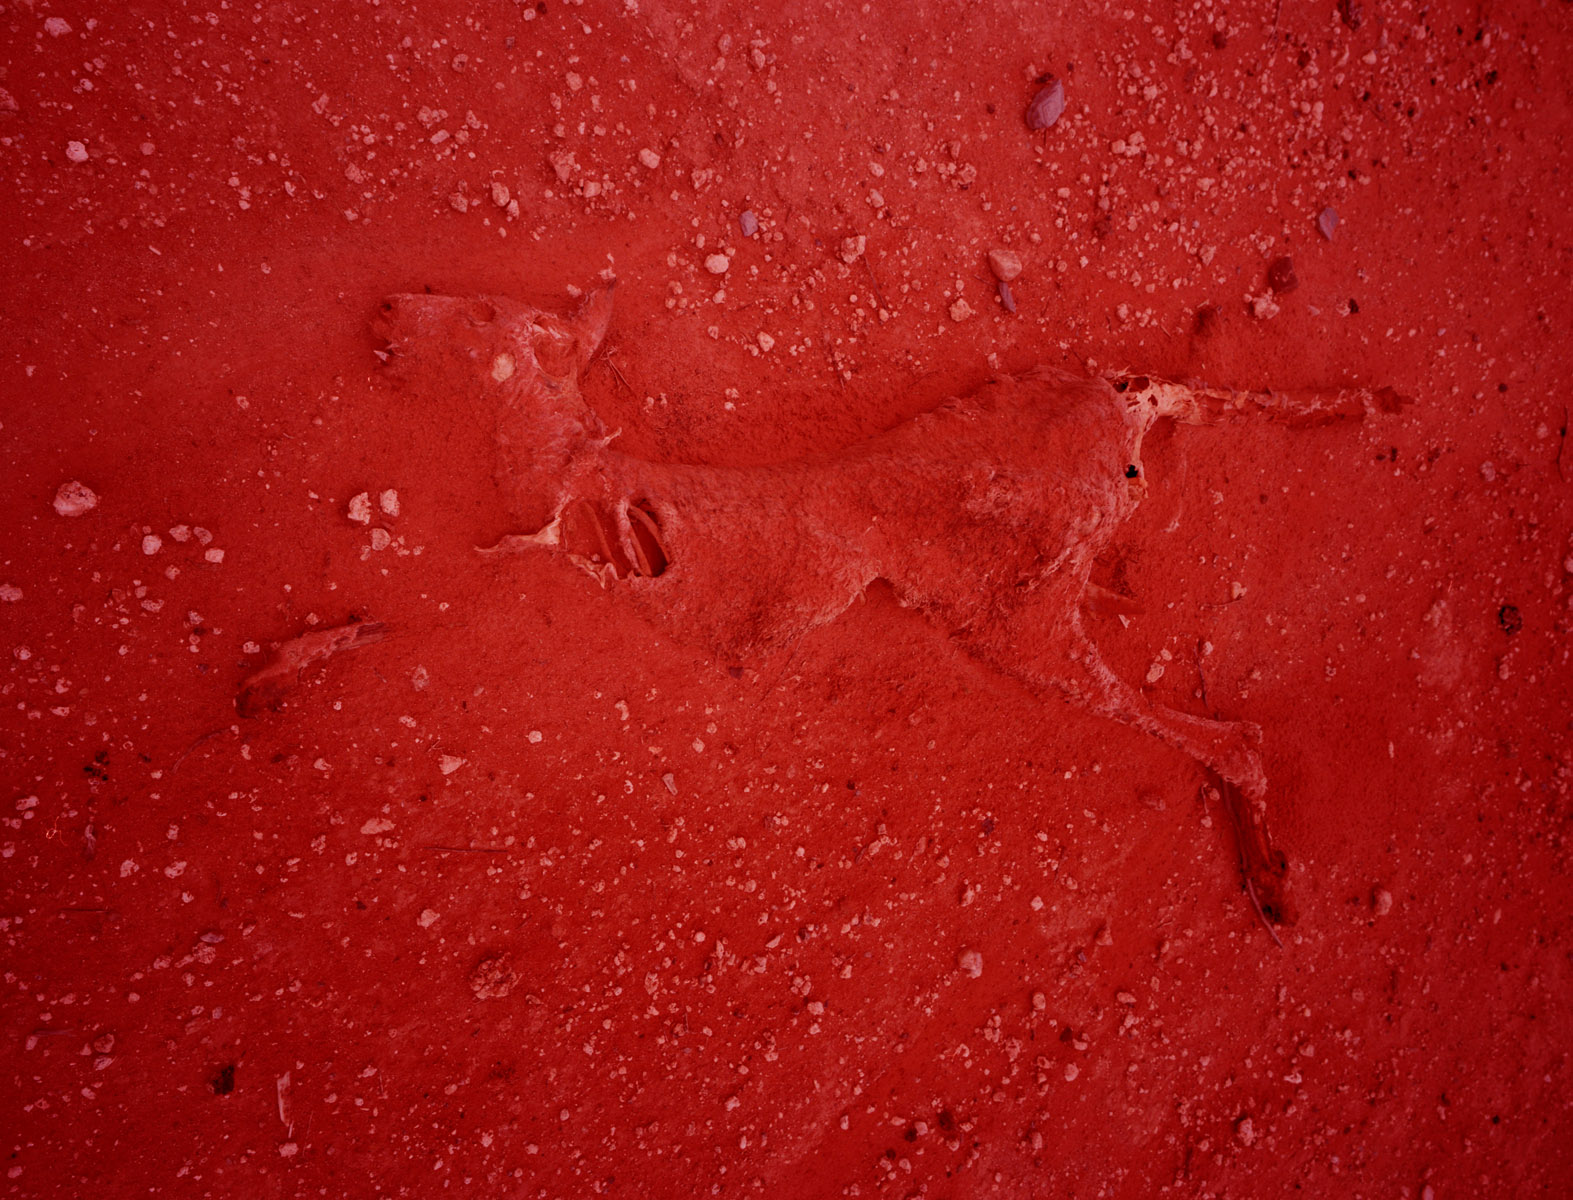 Dean Sewell, Australian Grey Kangaroo in Dust, Syngenta Photo Award